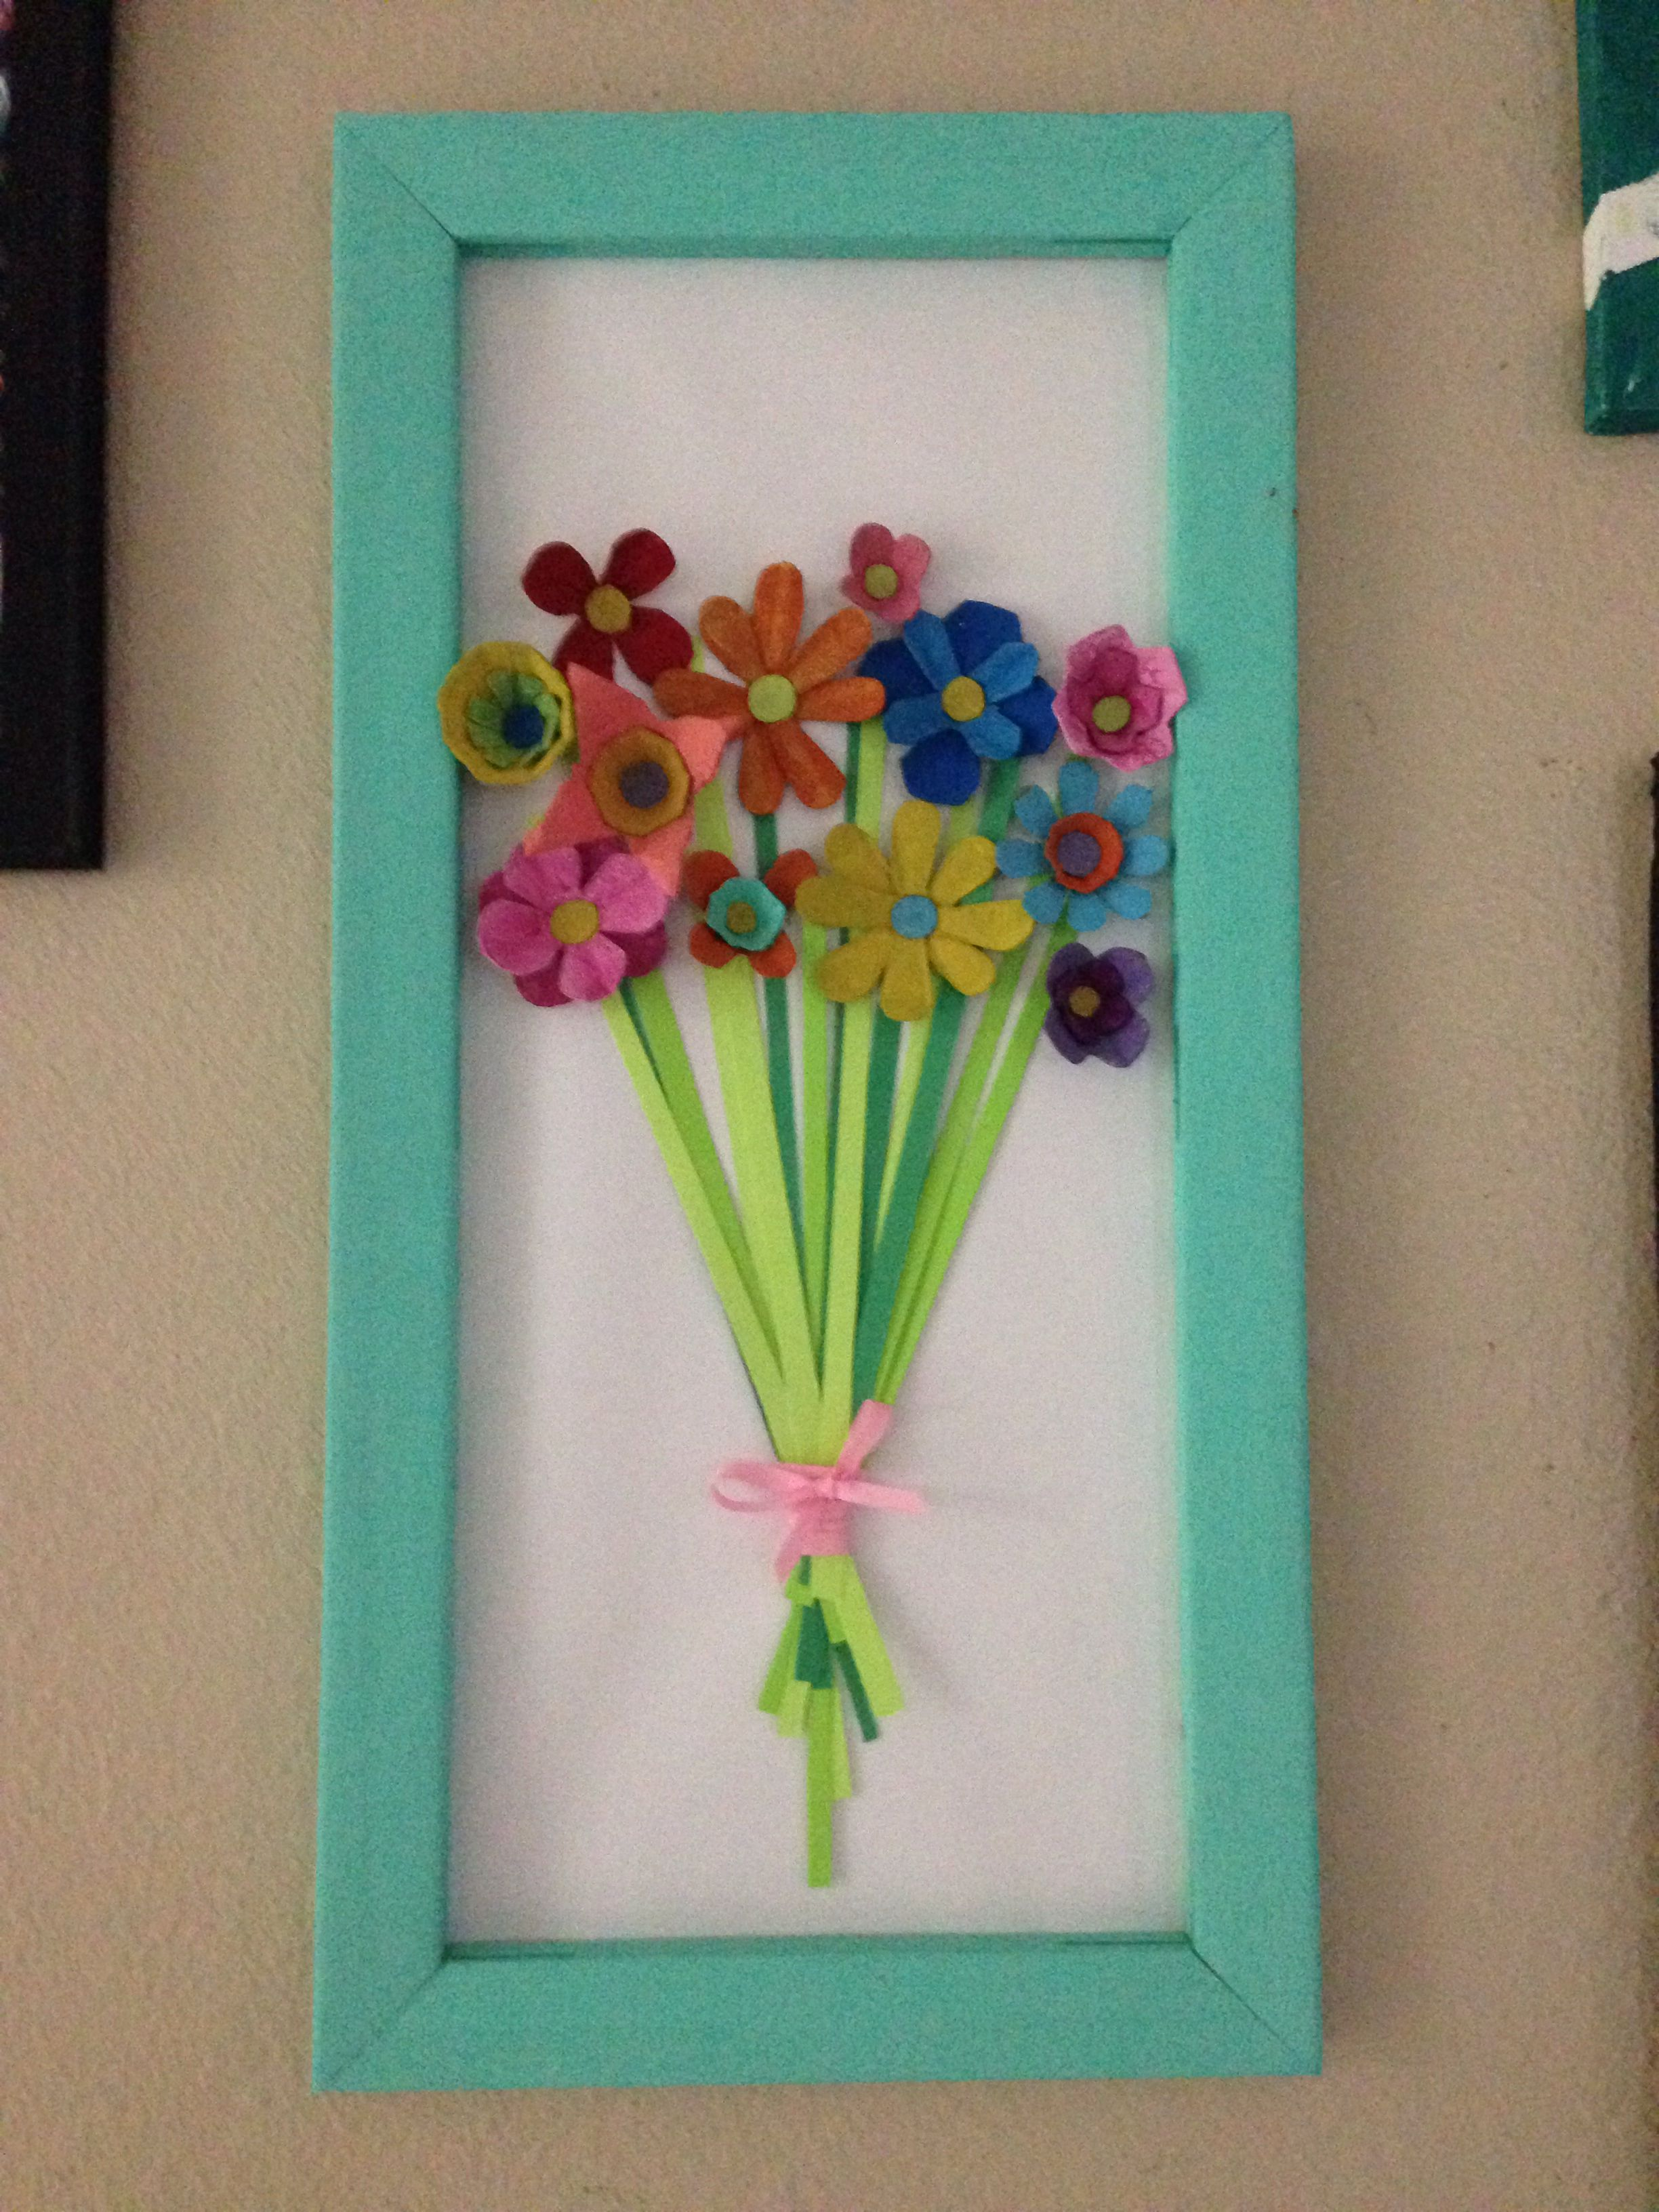 Egg Carton Flowers In Recycled Canvas Frame Egg Carton Crafts